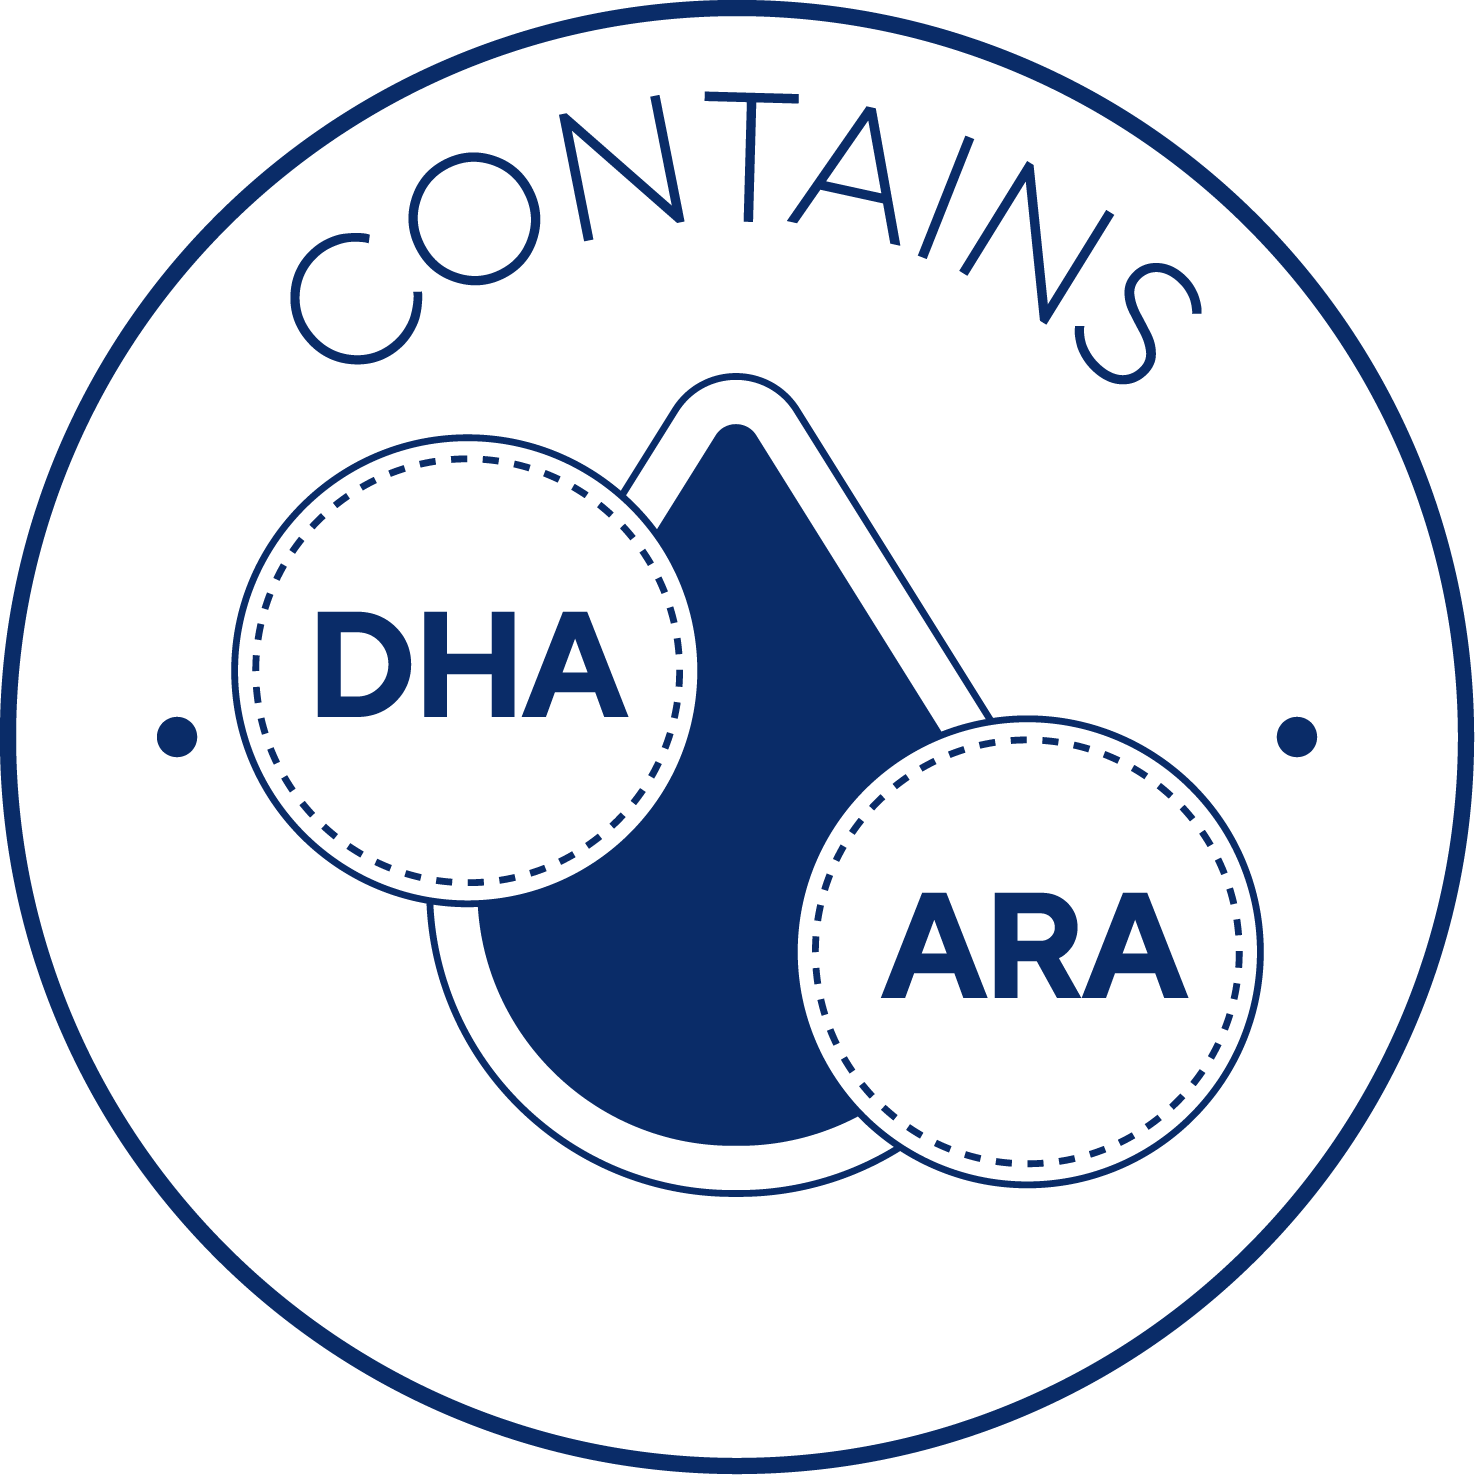 Contains DHA&ARA